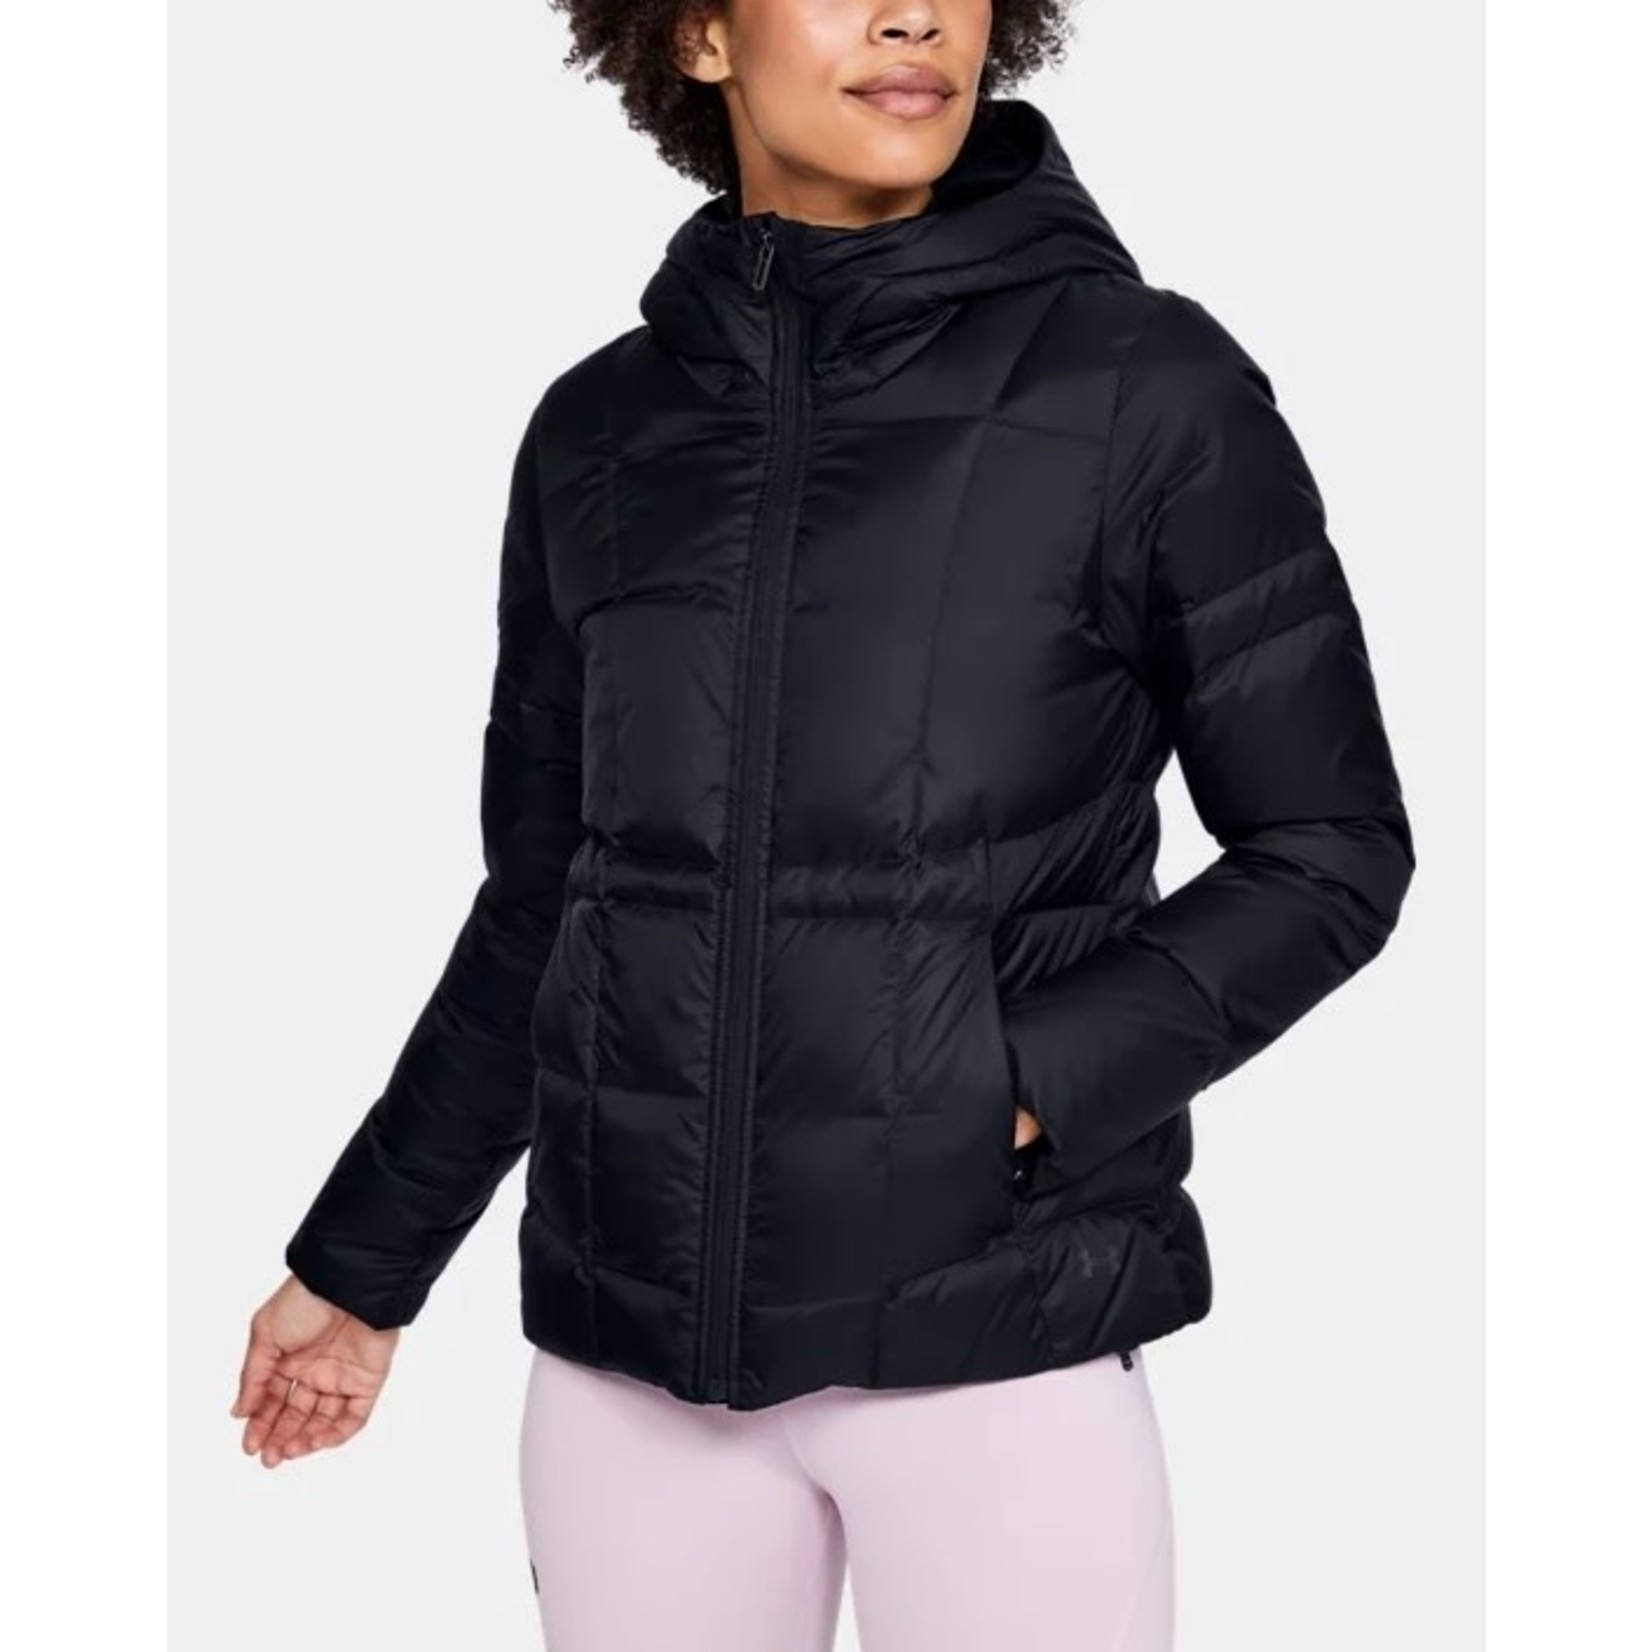 Under Armour Under Armour Winter Jacket, Armour Down Hooded, Ladies